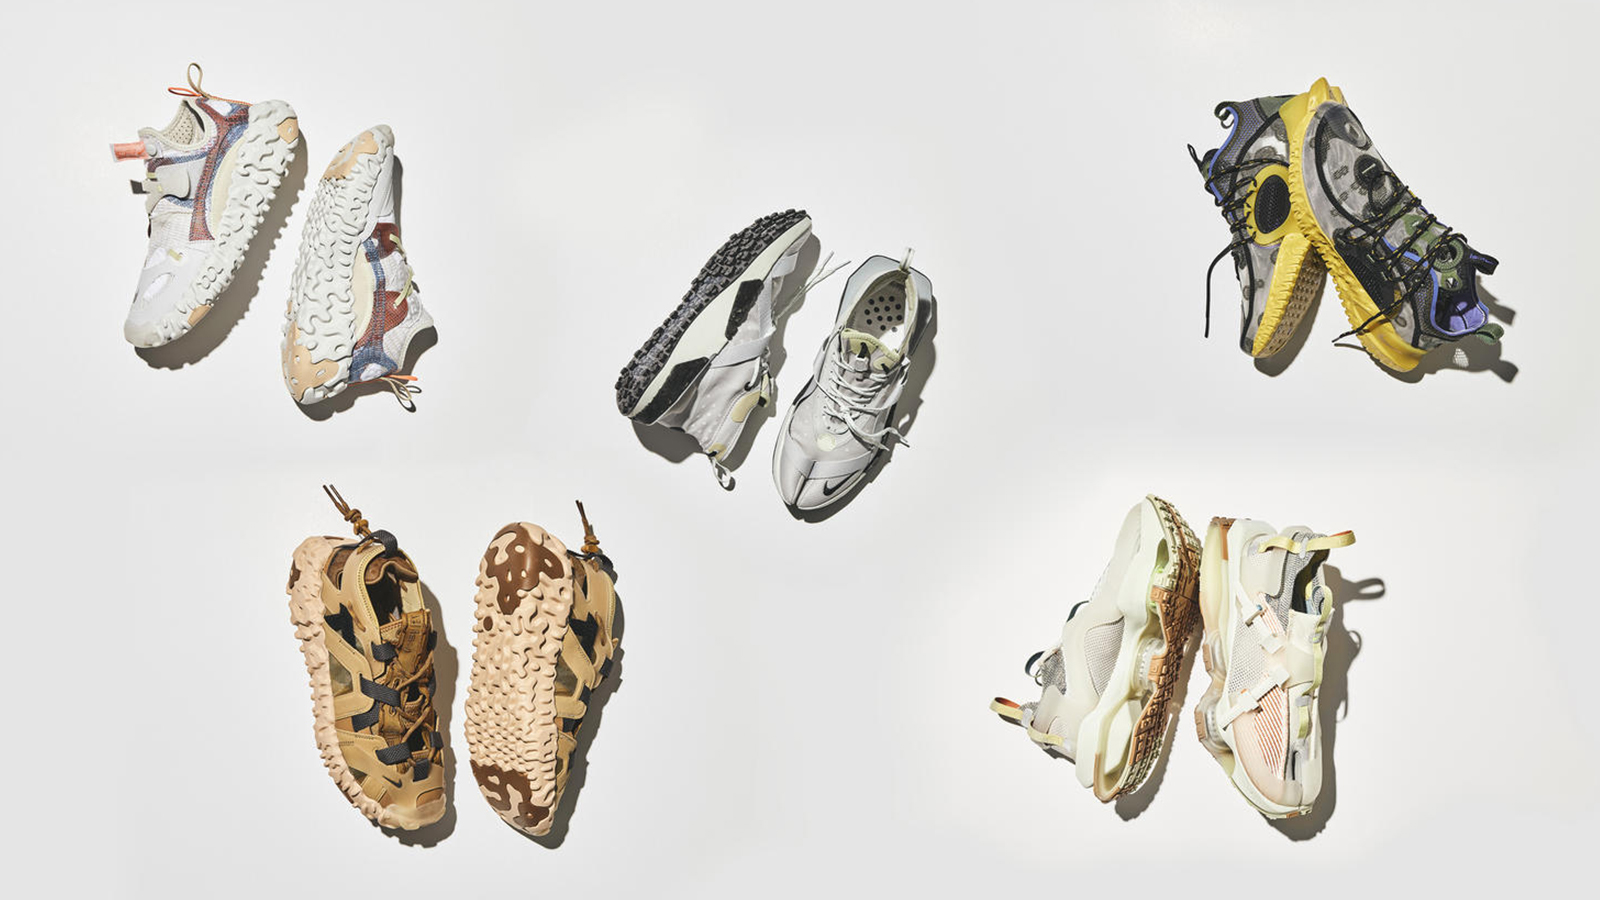 Nike ISPA 2020 Sneaker Collection